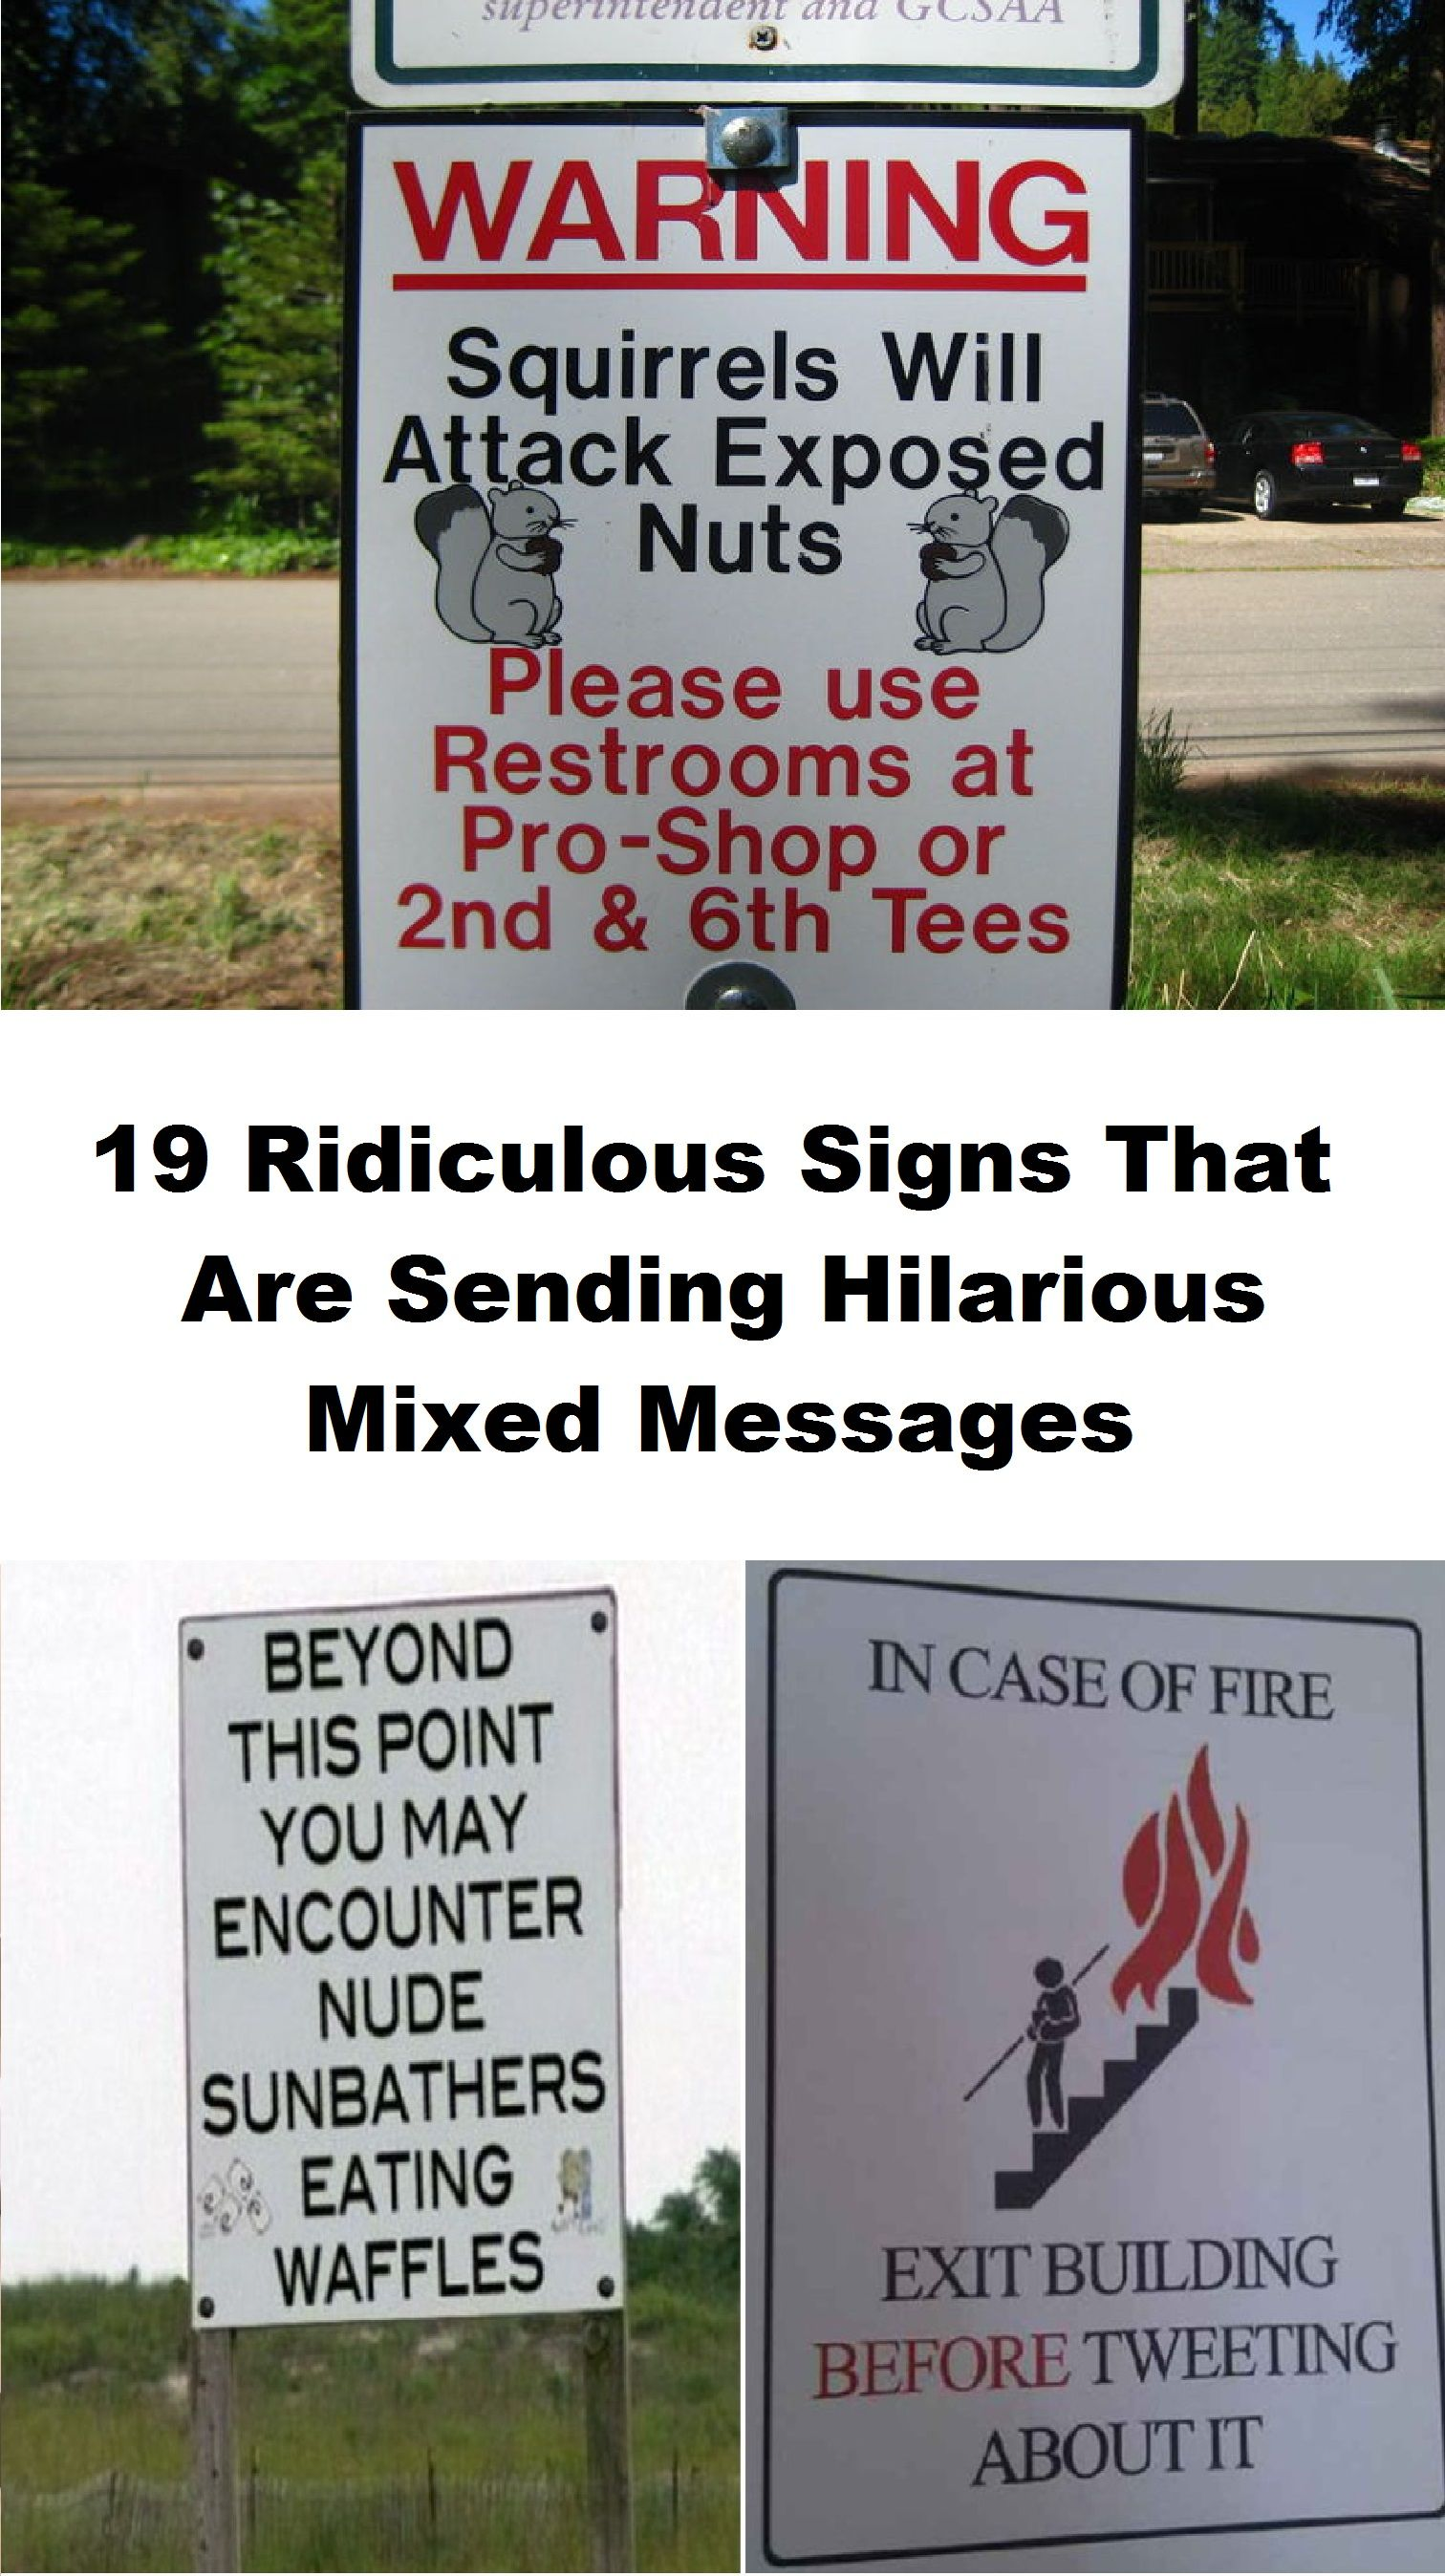 19 Ridiculous Signs That Are Sending Hilarious Mixed